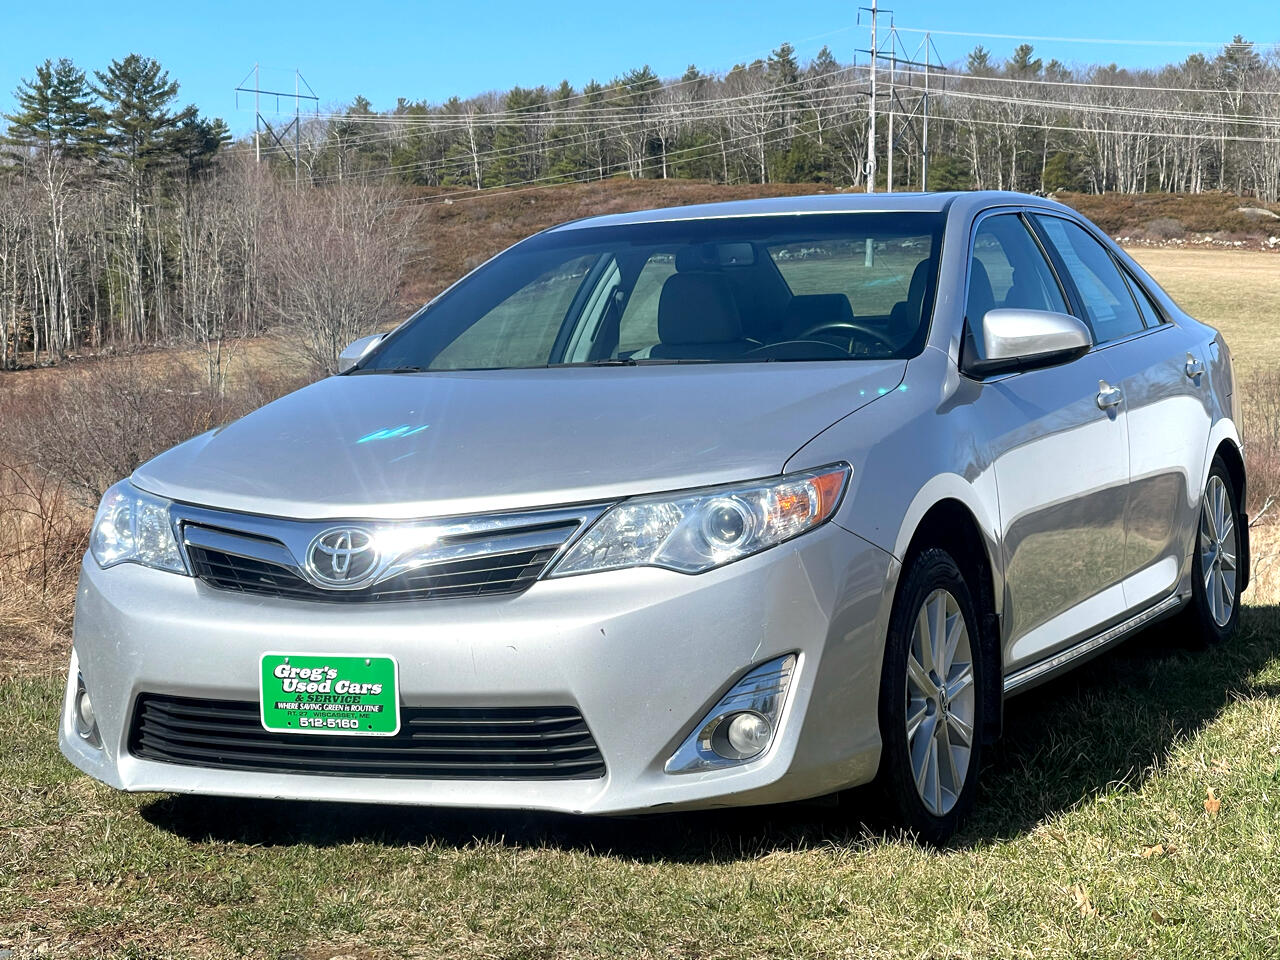 Toyota Camry 4dr Sdn I4 Auto SE Sport Limited Edition (Natl) 2012